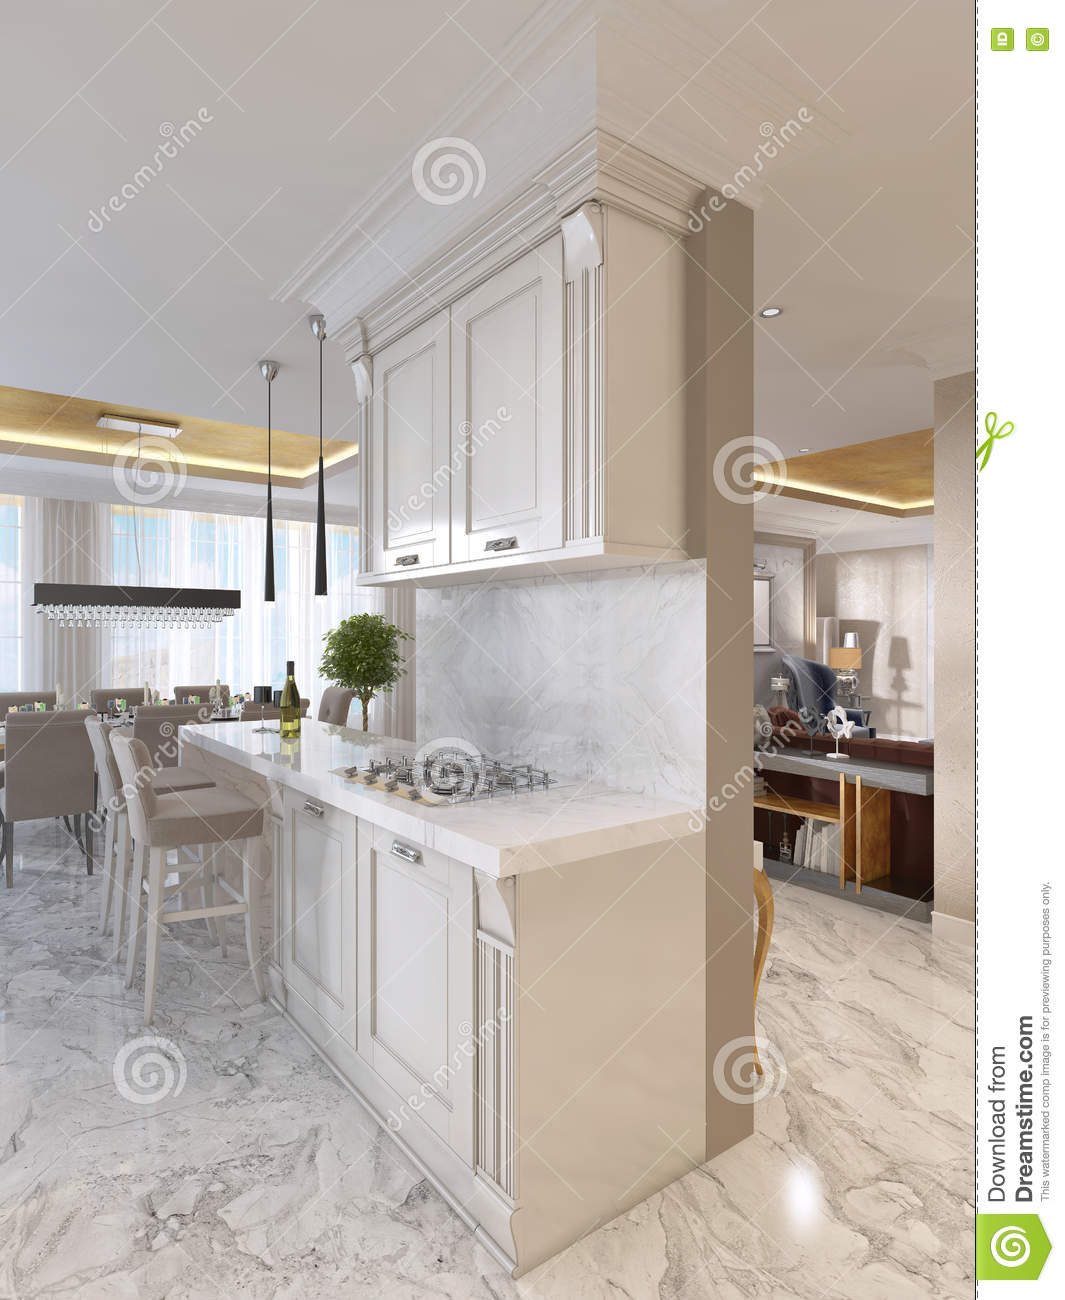 Luxury Kitchen Furniture Luxury Kitchen With Opaline Furniture In Art Deco Style Stock